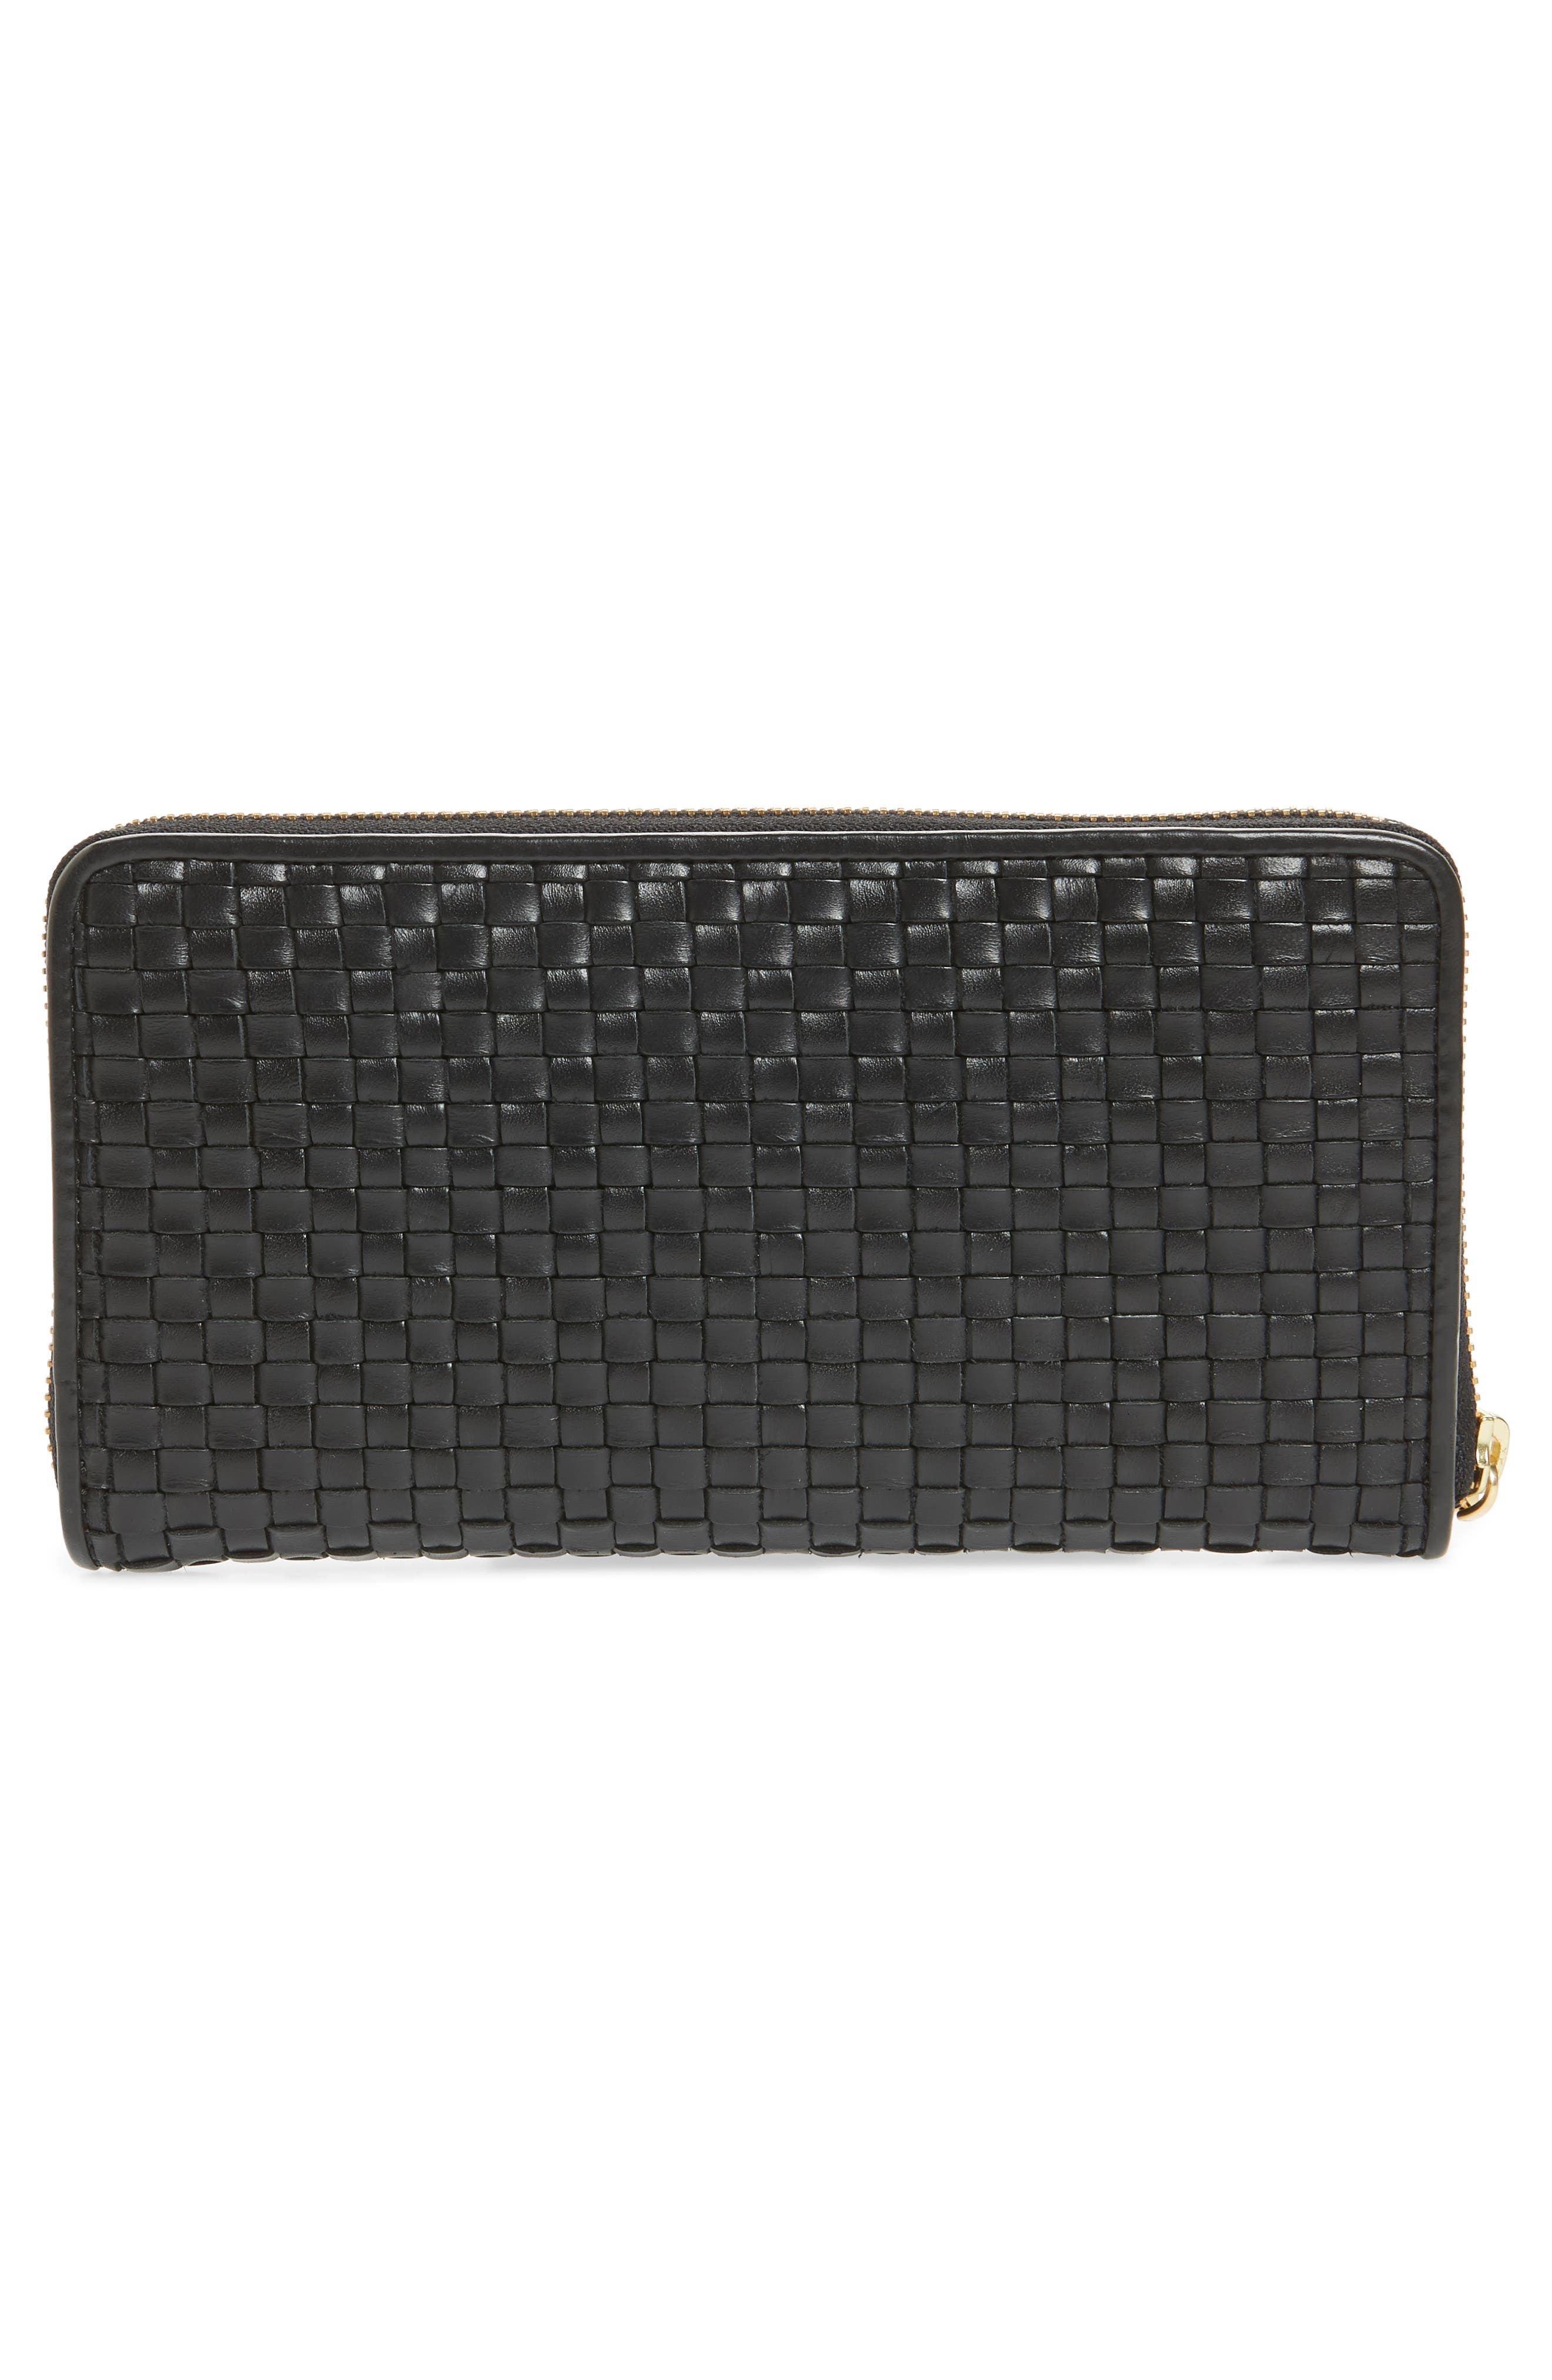 Zoe Woven RFID Leather Continental Zip Wallet,                             Alternate thumbnail 5, color,                             Black